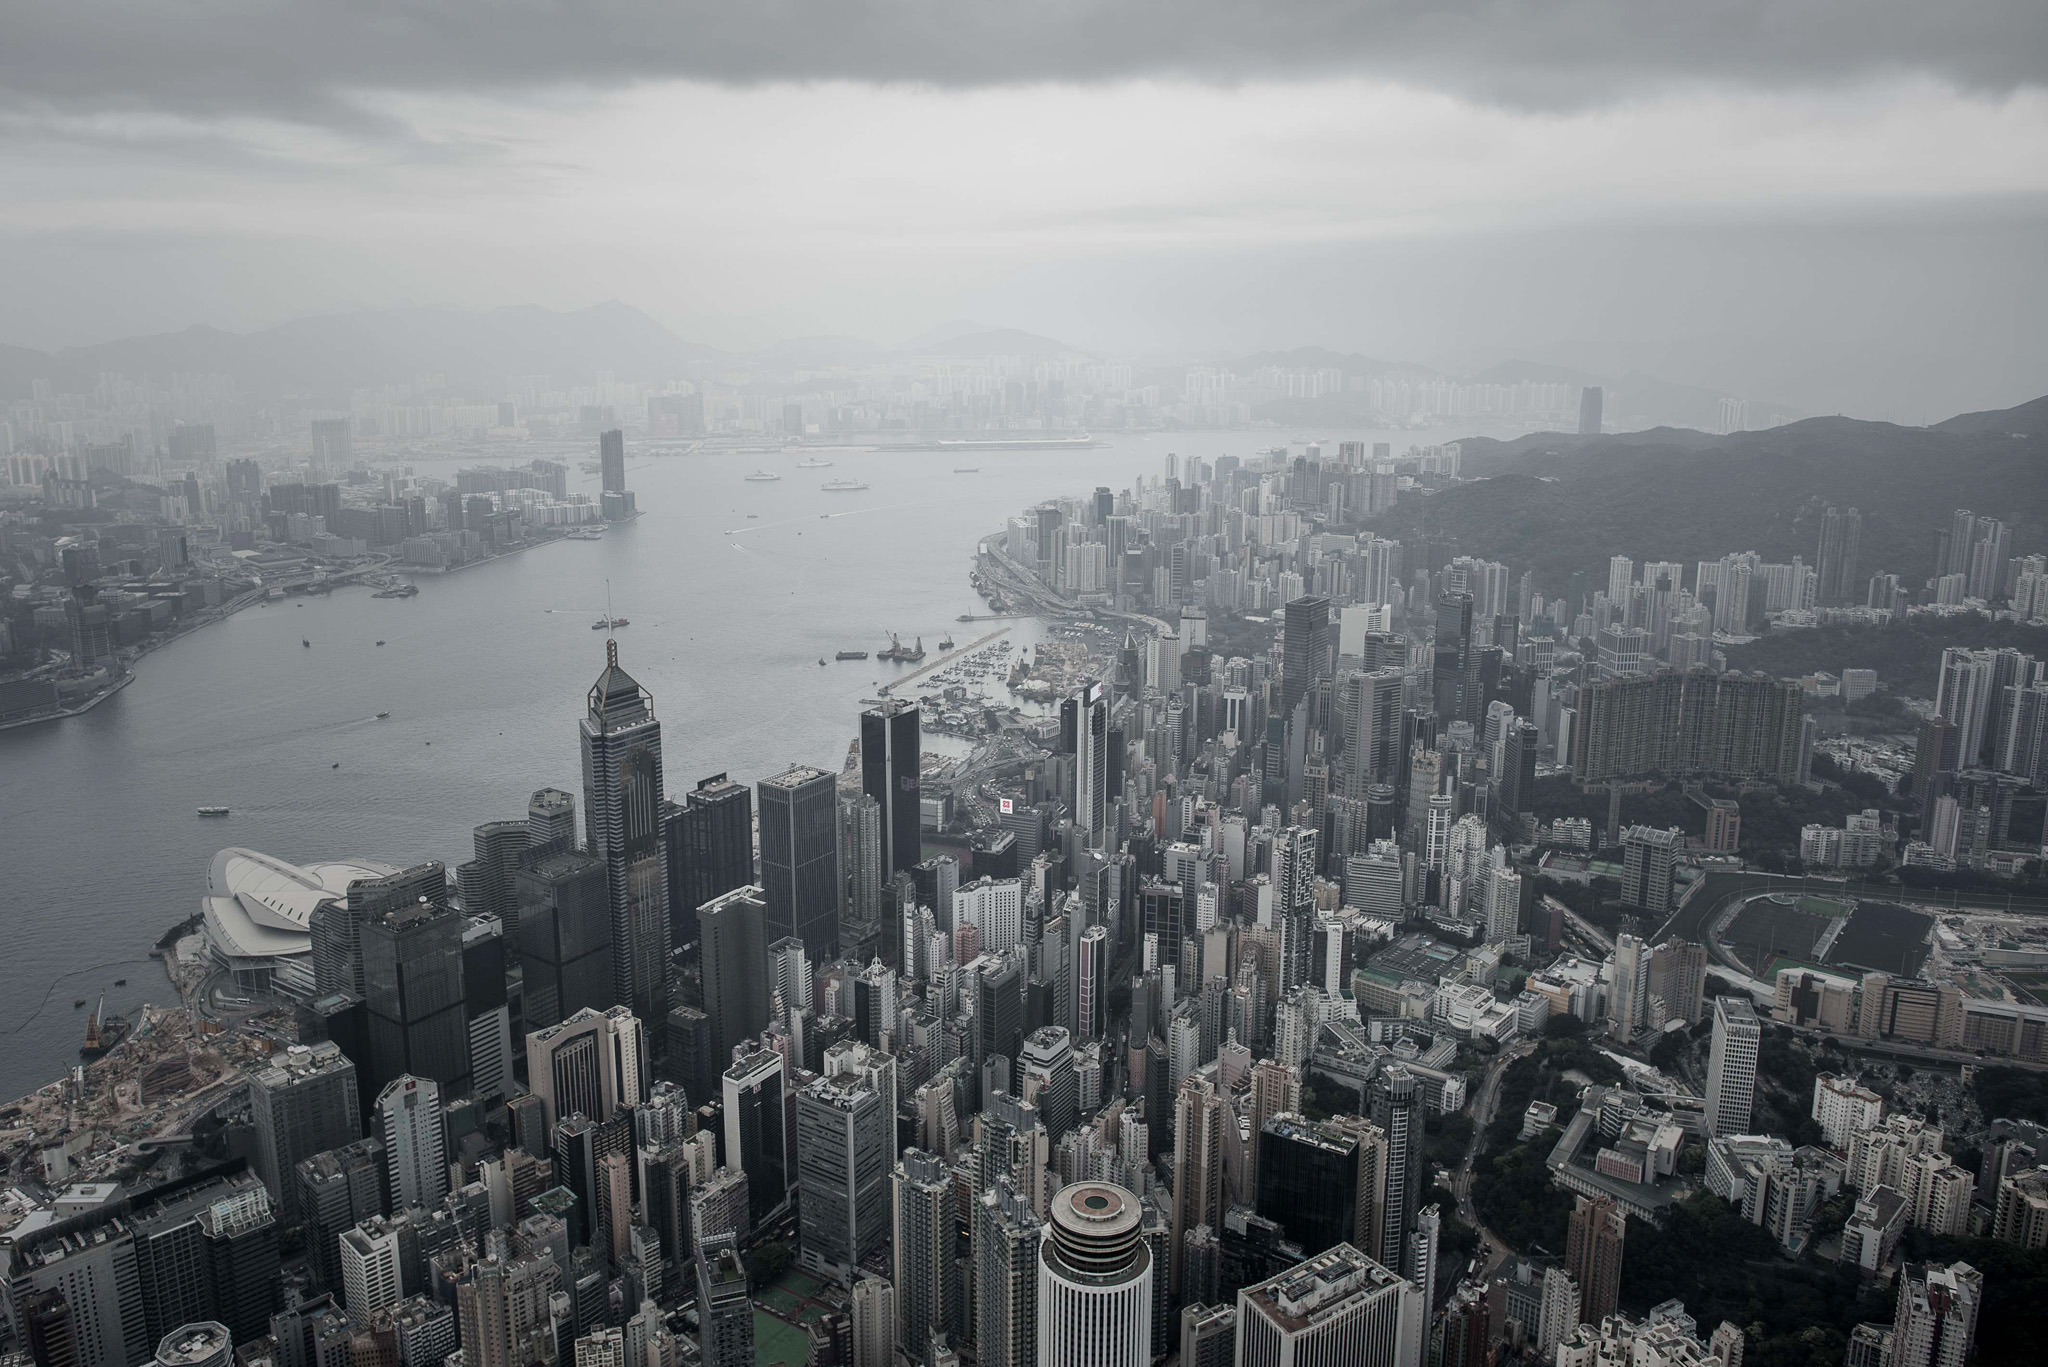 An aerial shot shows the skylines of Hon...An aerial shot shows the skylines of Hong Kong island (foreground) and Kowloon (back L) separated by Victoria harbour on April 23, 2015, a day after the city's government unveiled its Beijing-backed plan for leadership elections in 2017. Britain handed Hong Kong over to China in 1997 under a joint declaration which guaranteed political, social and economic freedoms not enjoyed on the Chinese mainland.  AFP PHOTO / Philippe LopezPHILIPPE LOPEZ/AFP/Getty Images